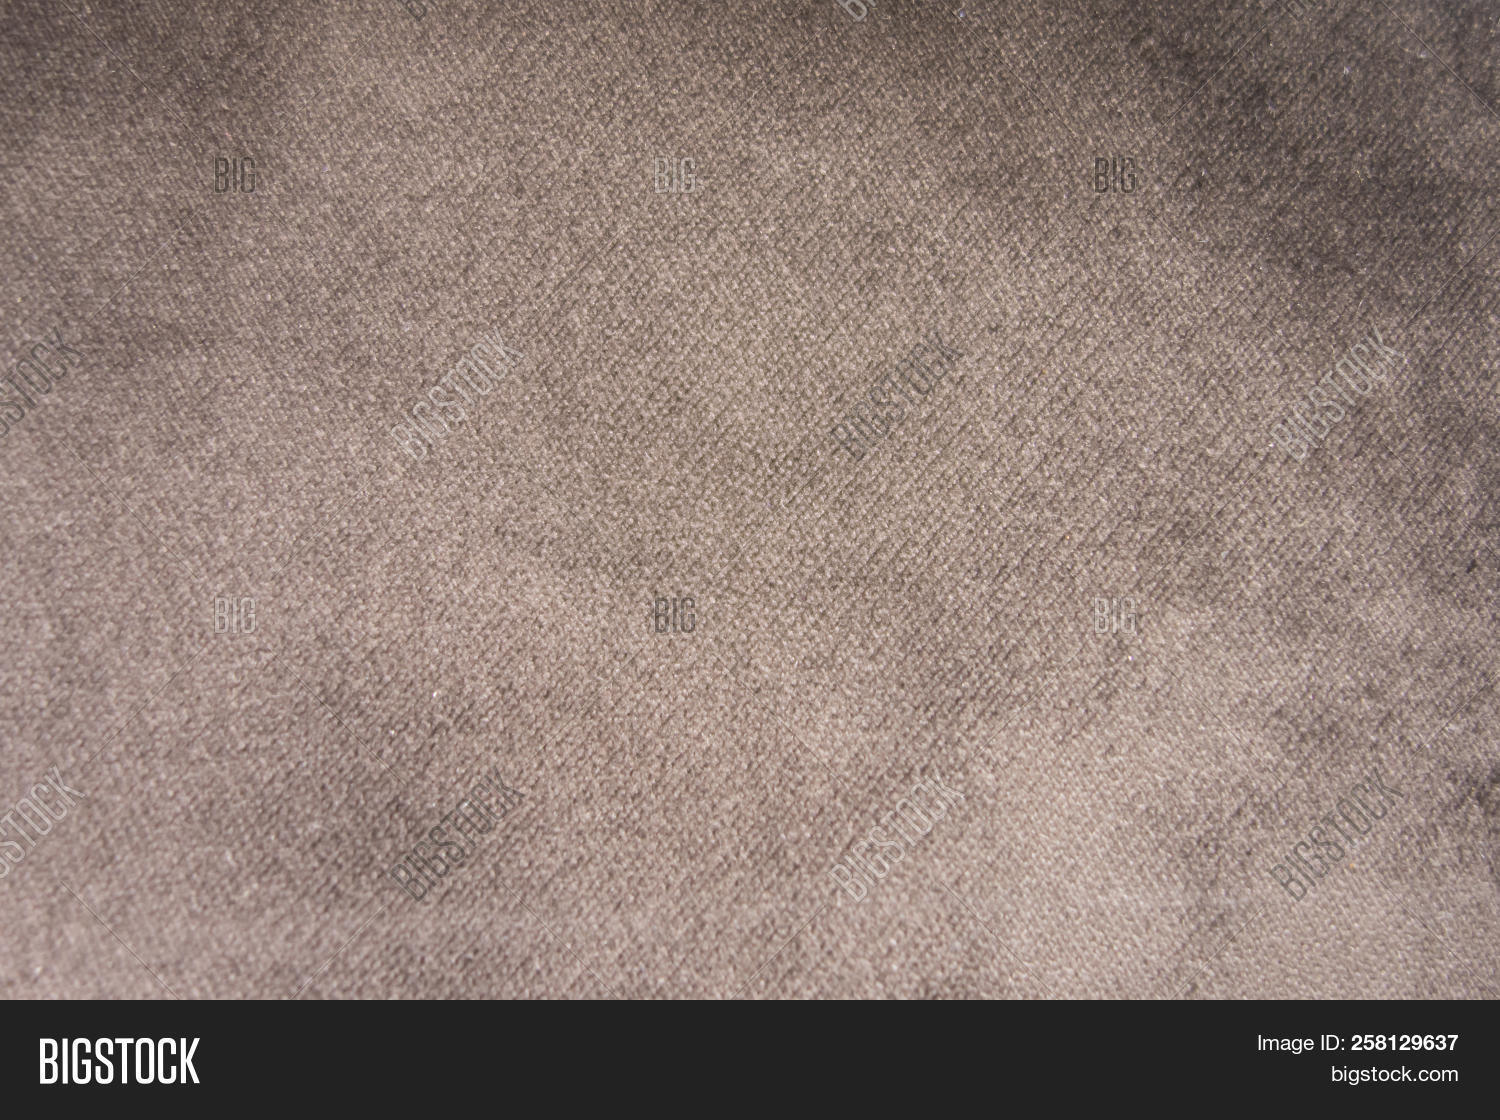 Light Gray Suede Image Photo Free Trial Bigstock